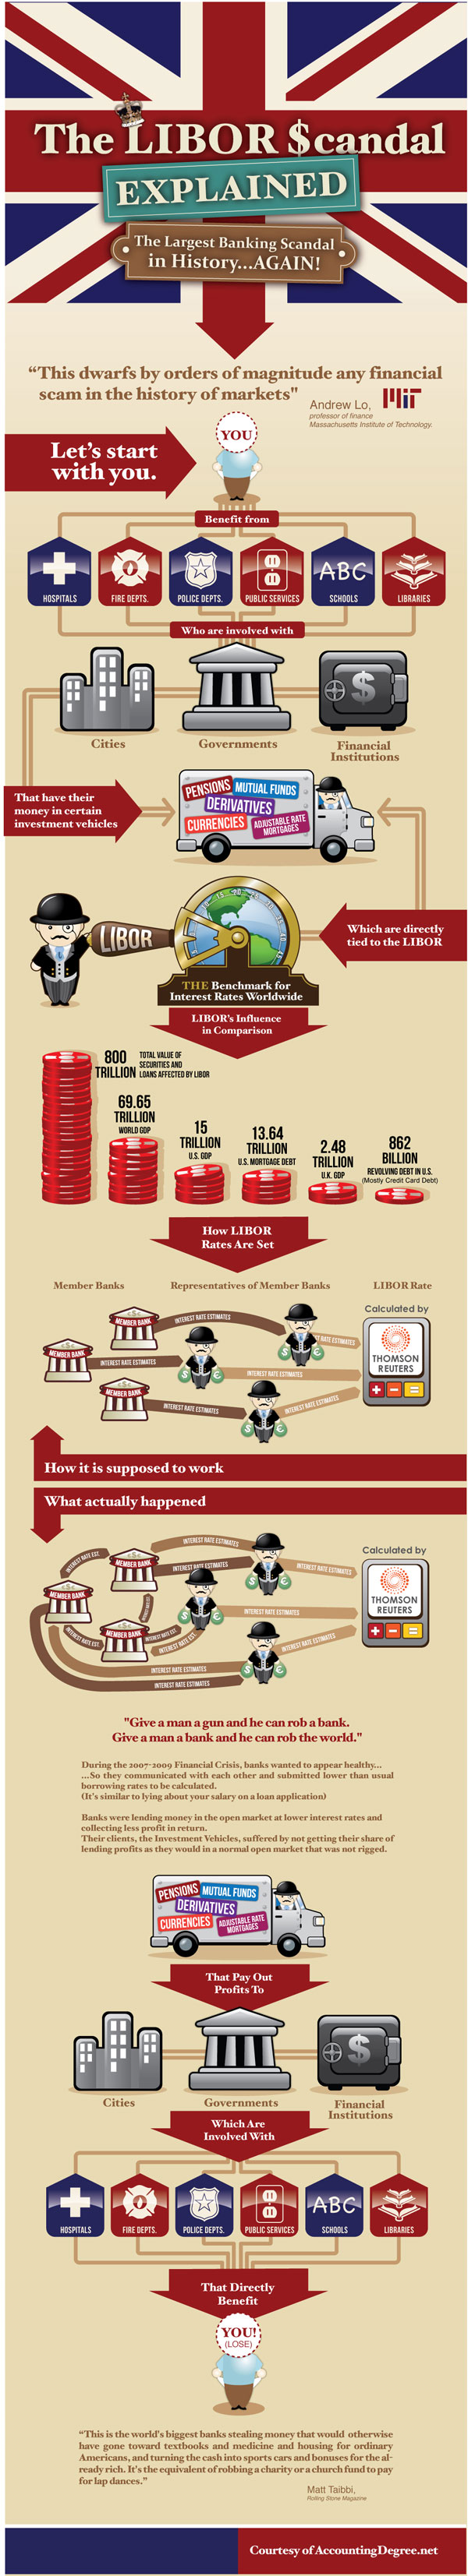 the libor scandal explained infographic